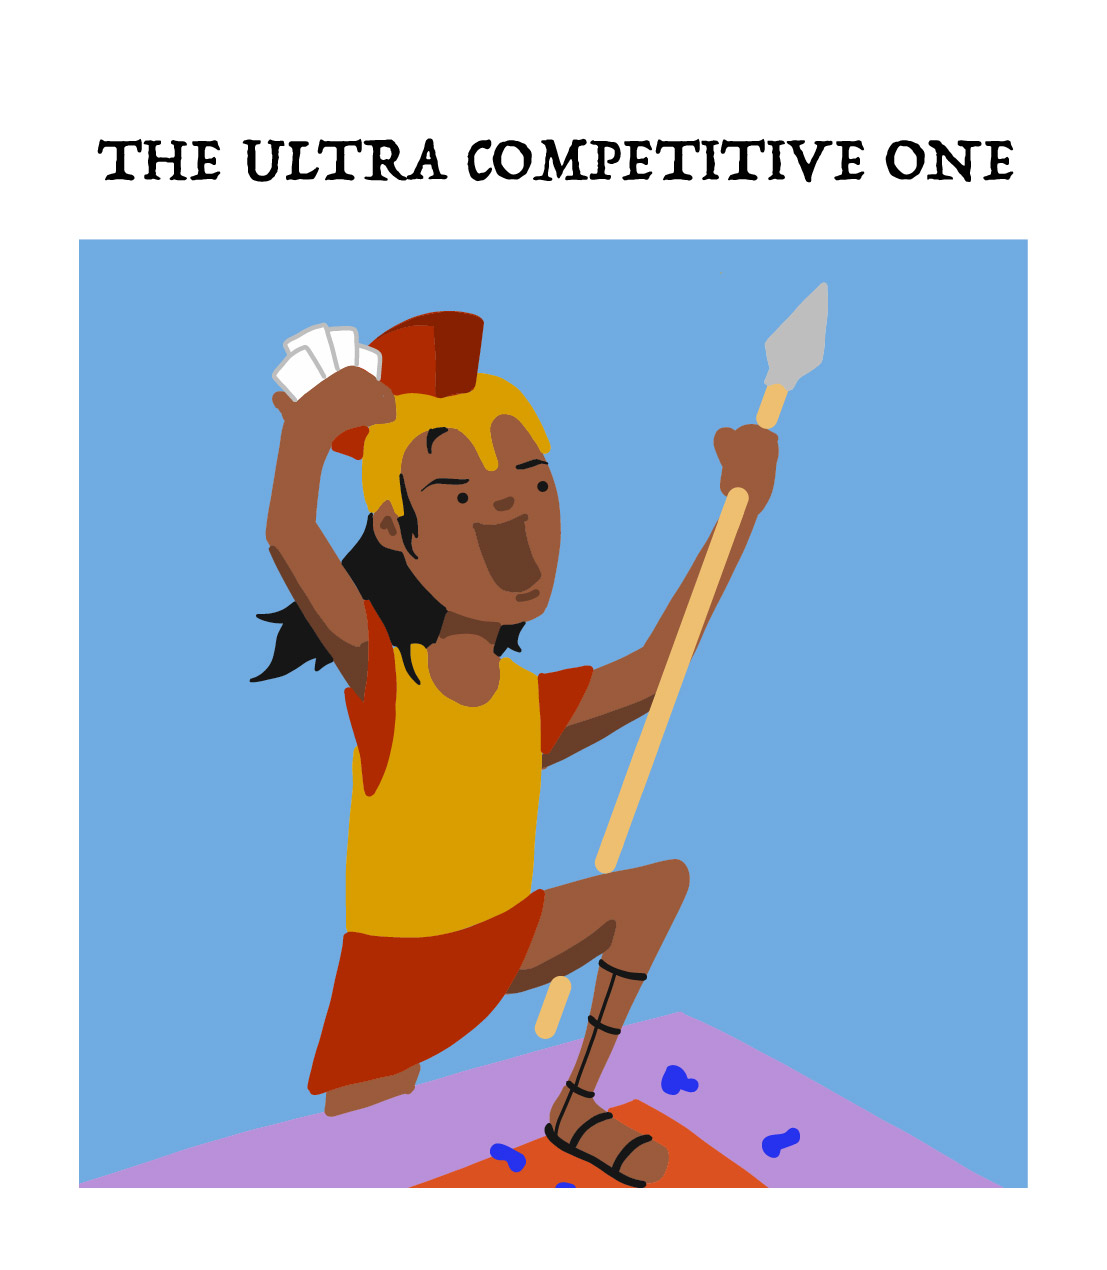 the ultra competitive one, type of board game player